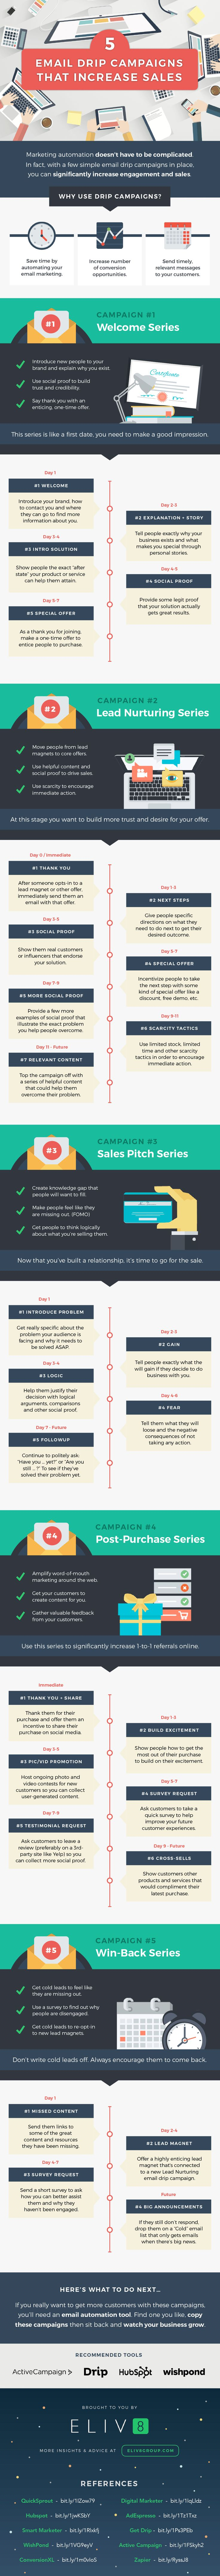 5 Email Drip Campaigns That Increase Sales #infographic #EmailMarketing…